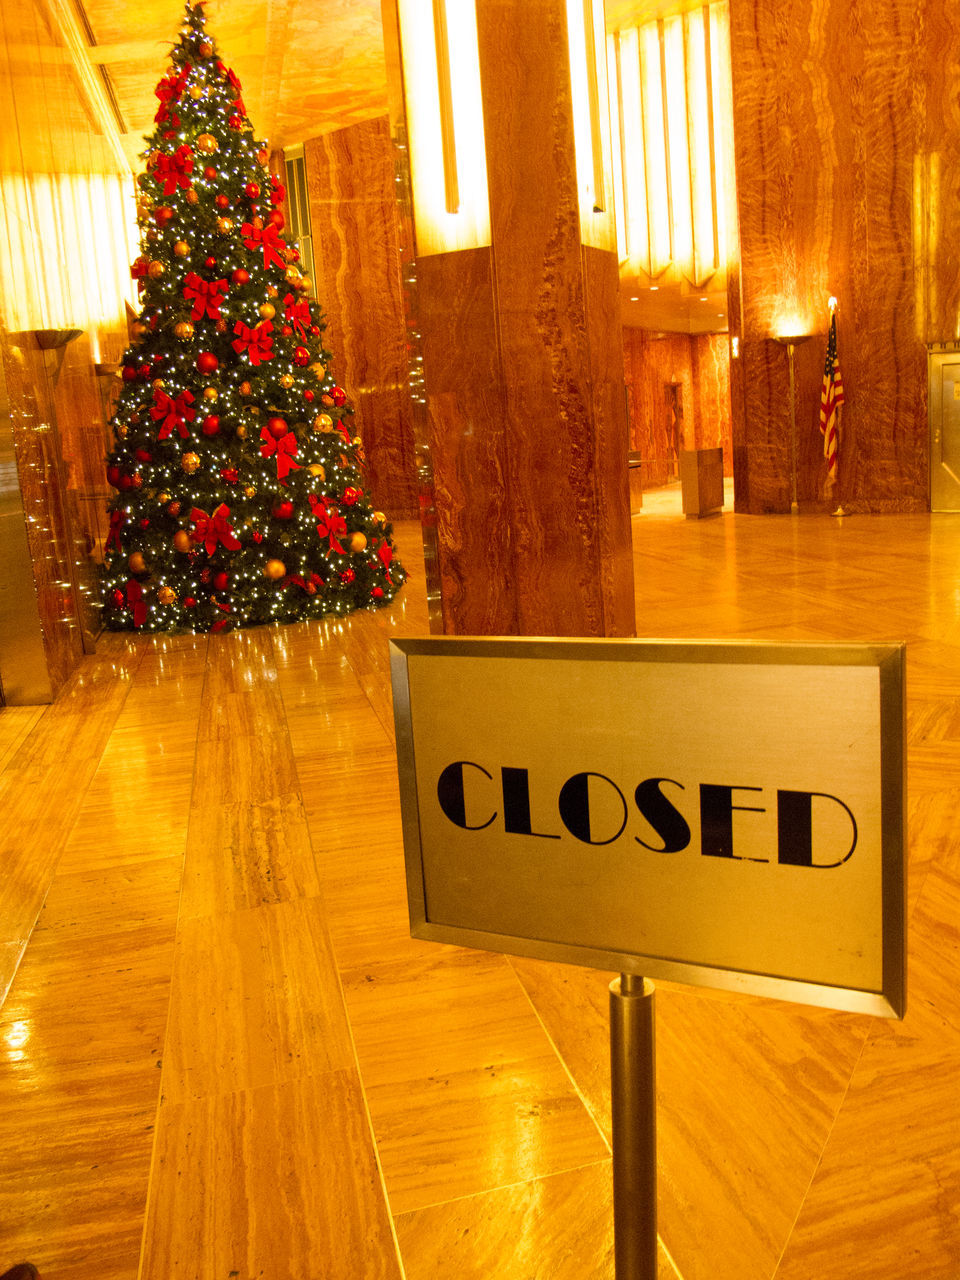 Closed sign in front of decorated Christmas tree in building